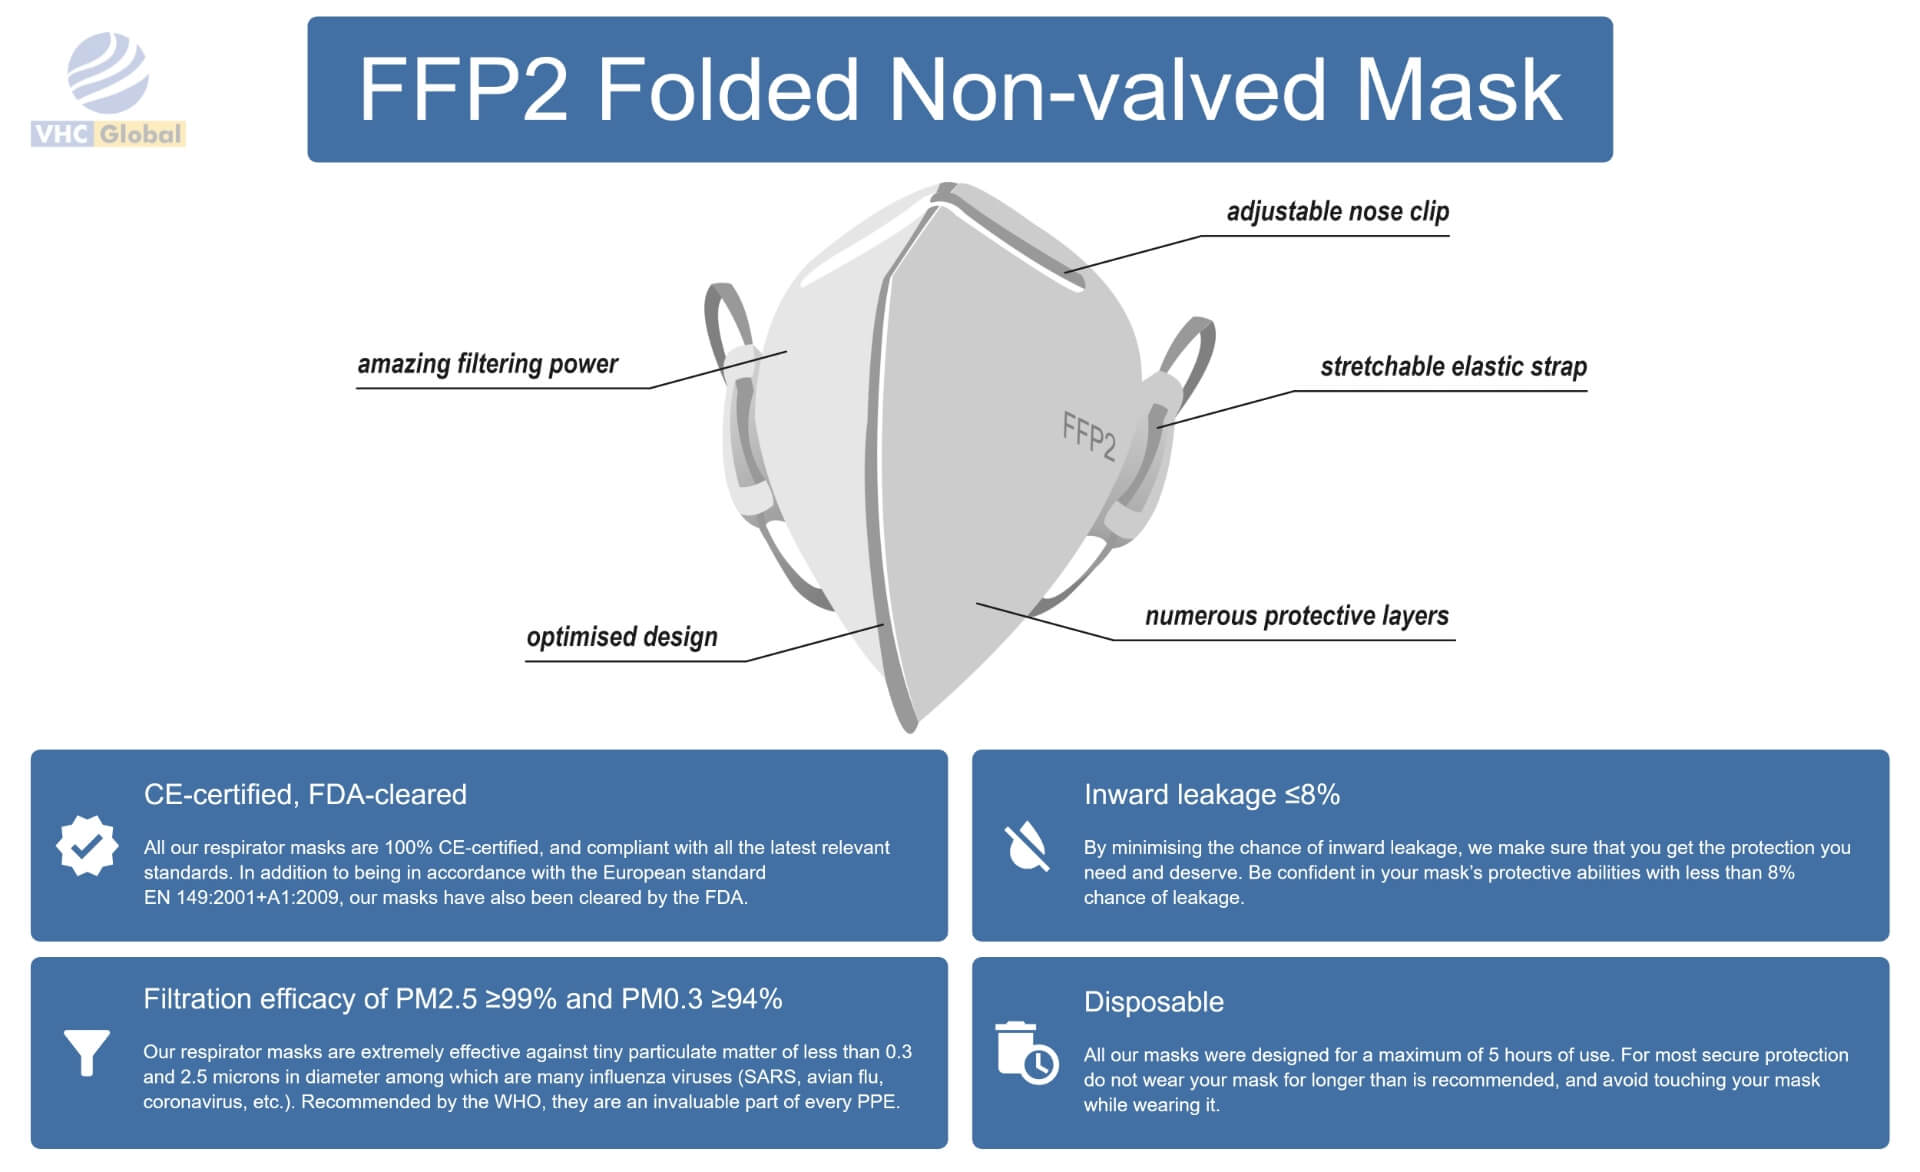 Infographic for the FFP2 face mask, FFP2 Mask Folded Non-Valved. All details. FFP2 Respirator Mask or FFP2 Mask Folded Non-Valved. Adjustable nose clip, Stretchable elastic strip, numerous protective layers, optimized design, amazing filtering power, improved breathability. Inward leaking 99% and PM0.3>94%